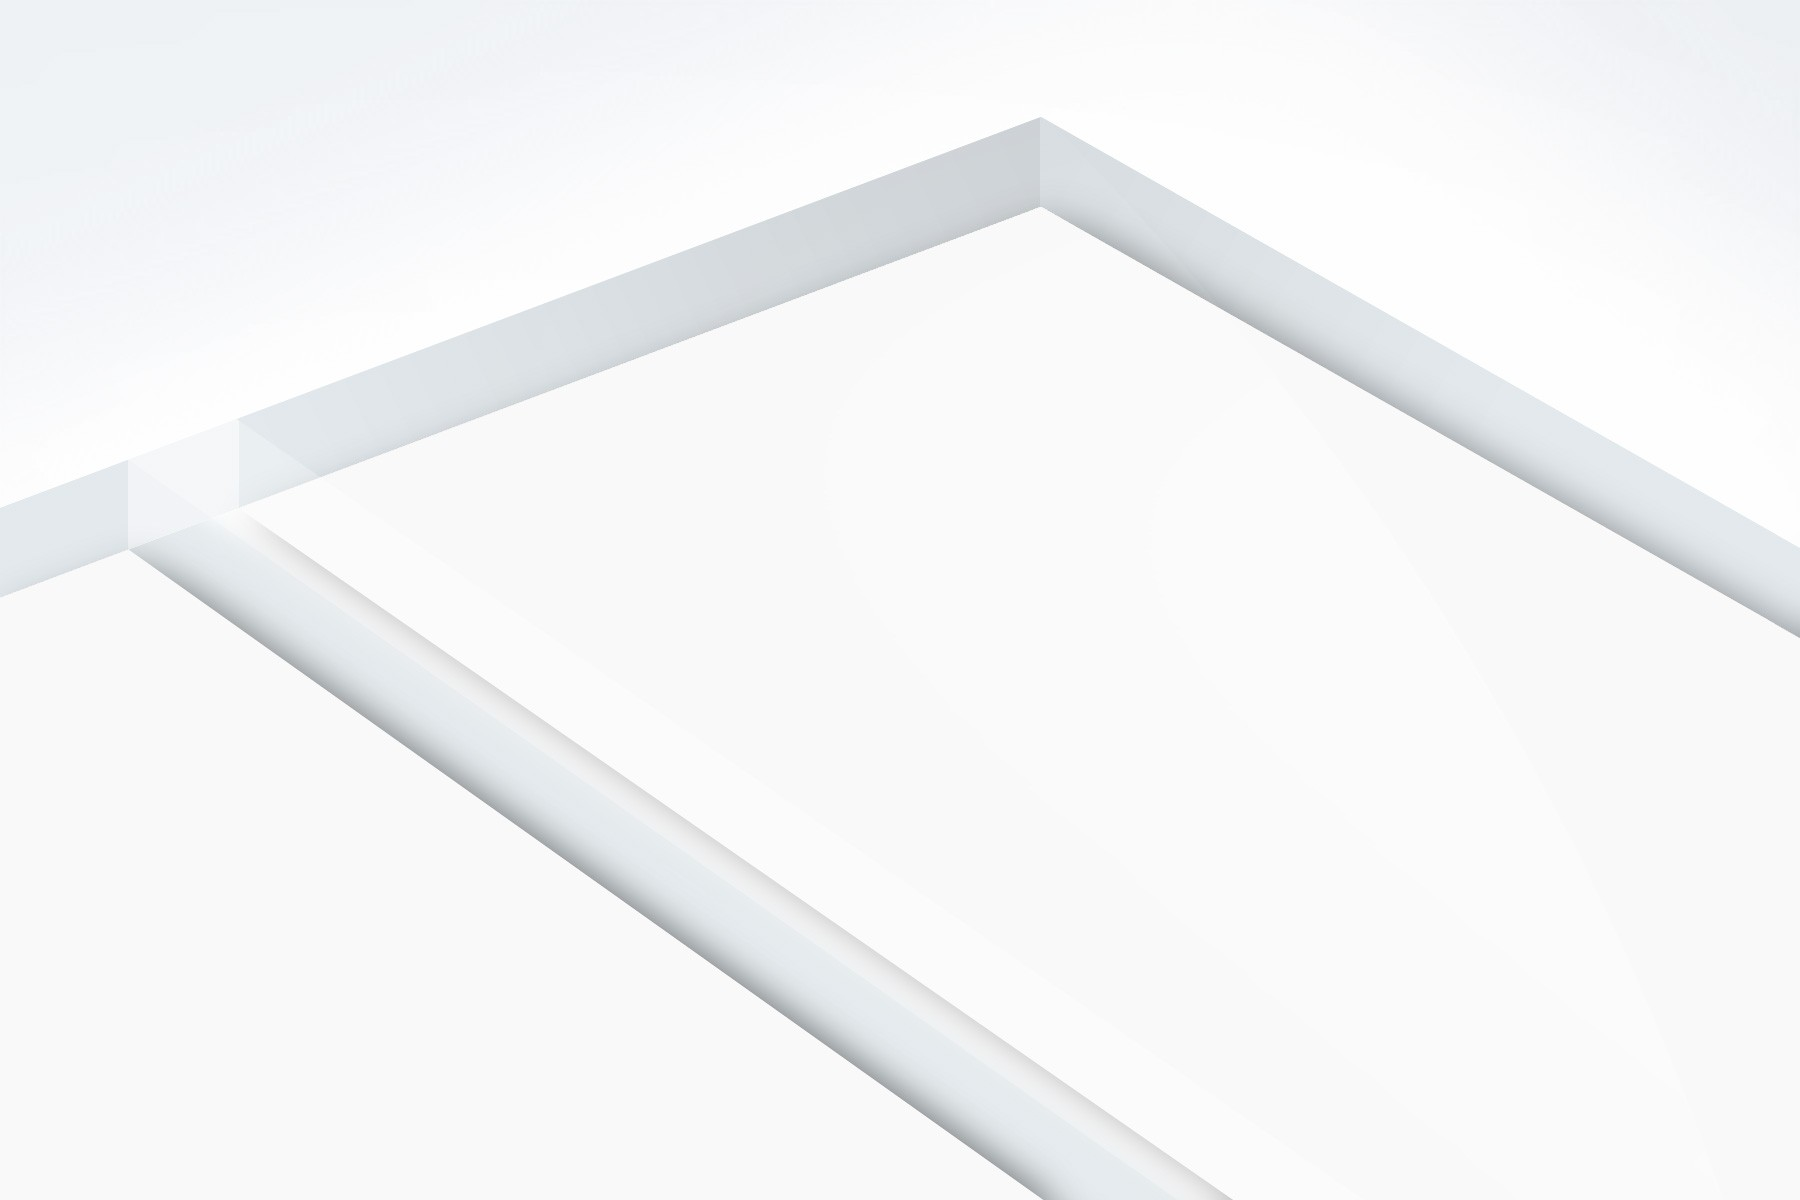 TroPly HiGloss Reverse, Clear/Clear, 1ply, 3.2 mm